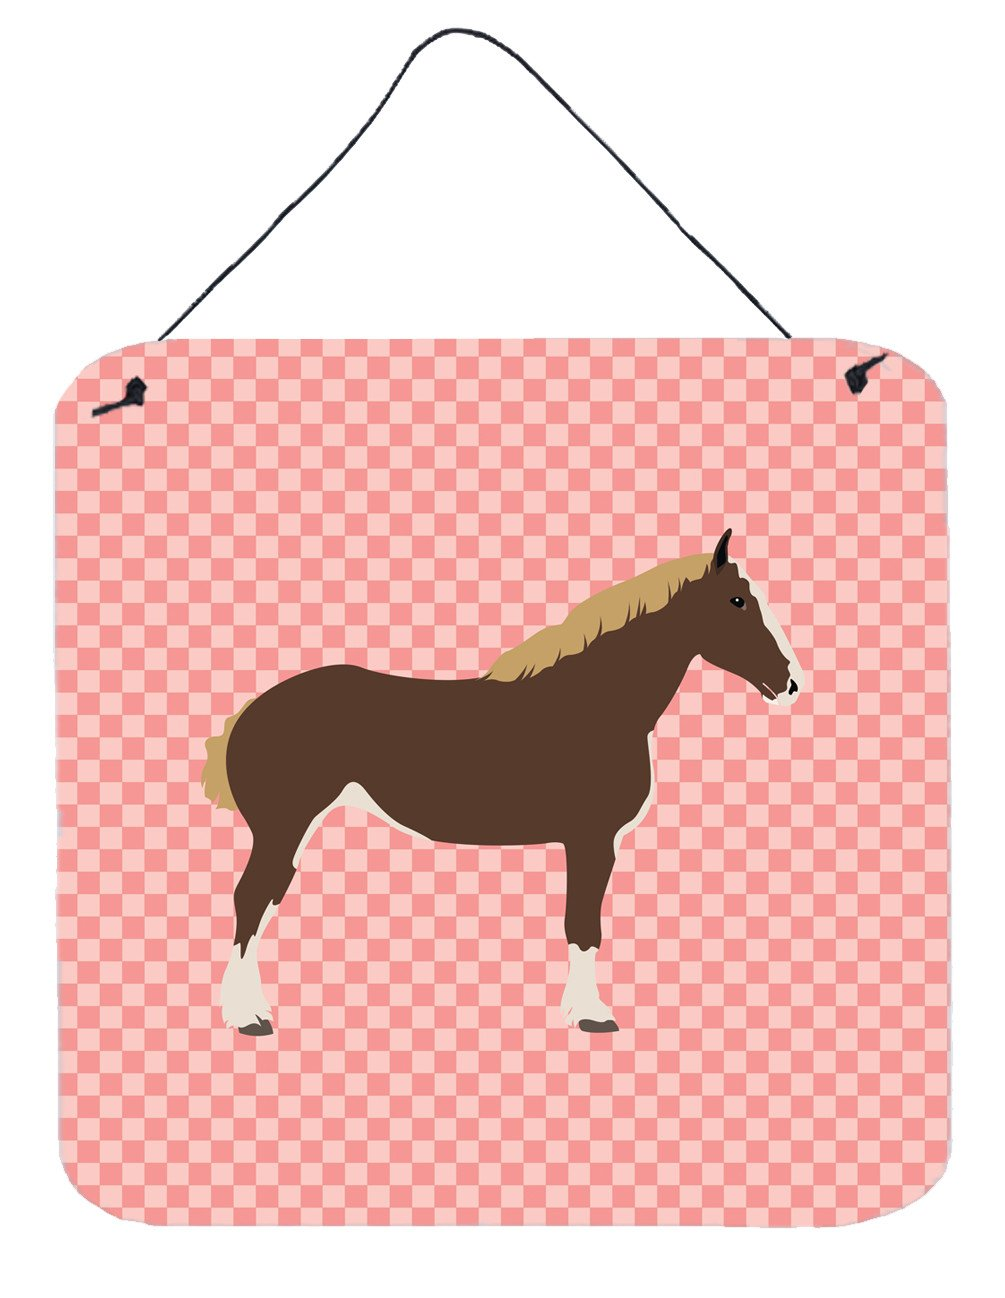 Percheron Horse Pink Check Wall or Door Hanging Prints BB7906DS66 by Caroline's Treasures